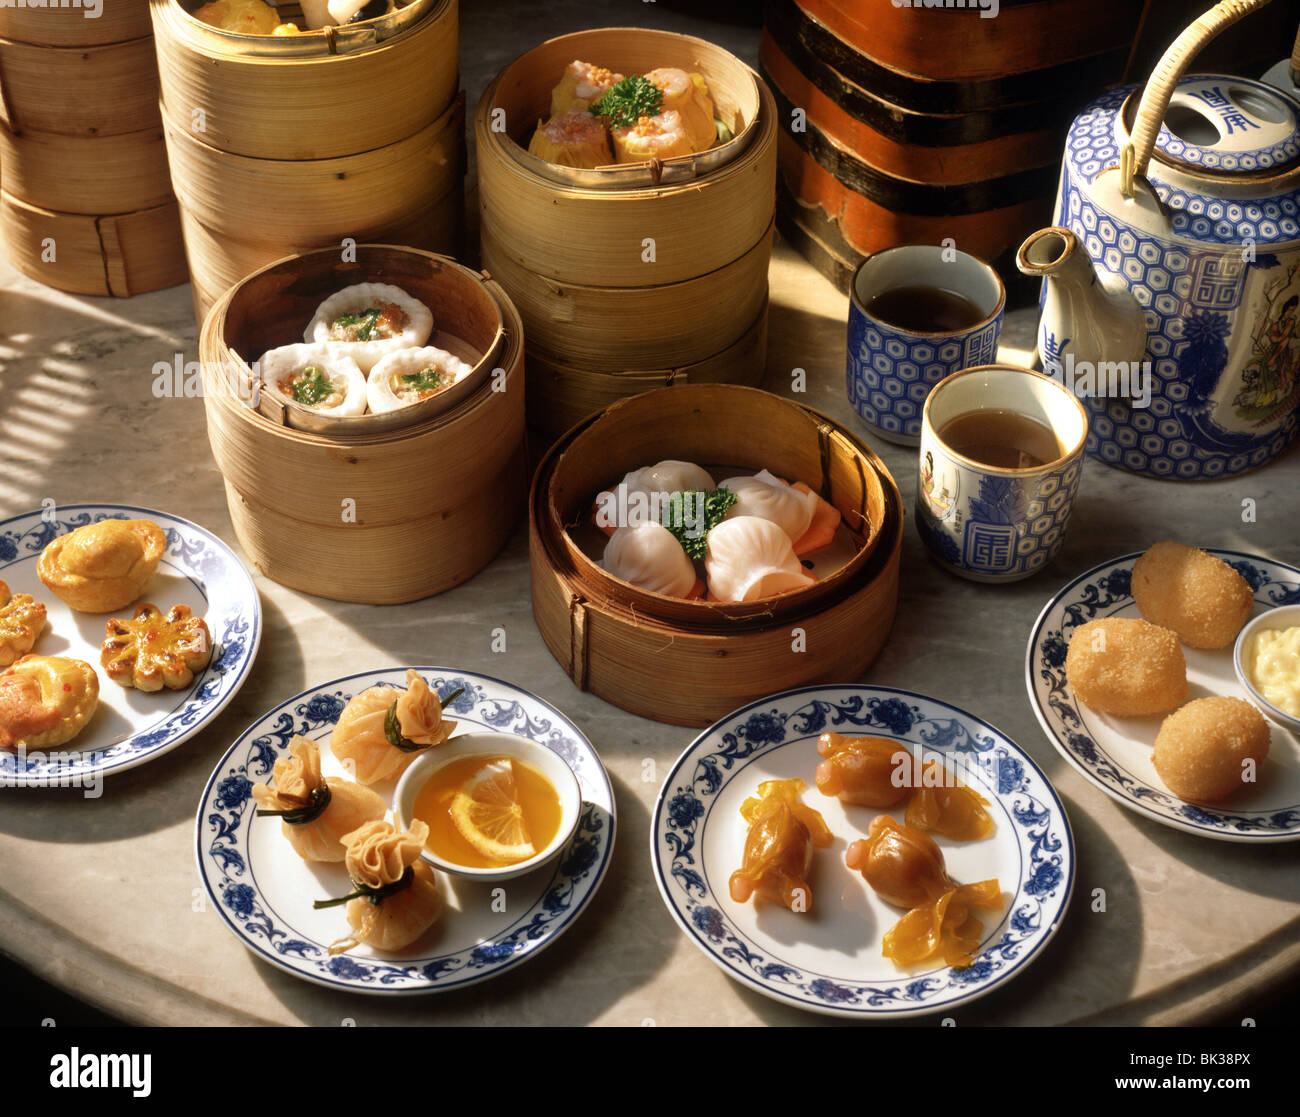 Steamers and plates of dim sum with tea, China, Asia - Stock Image